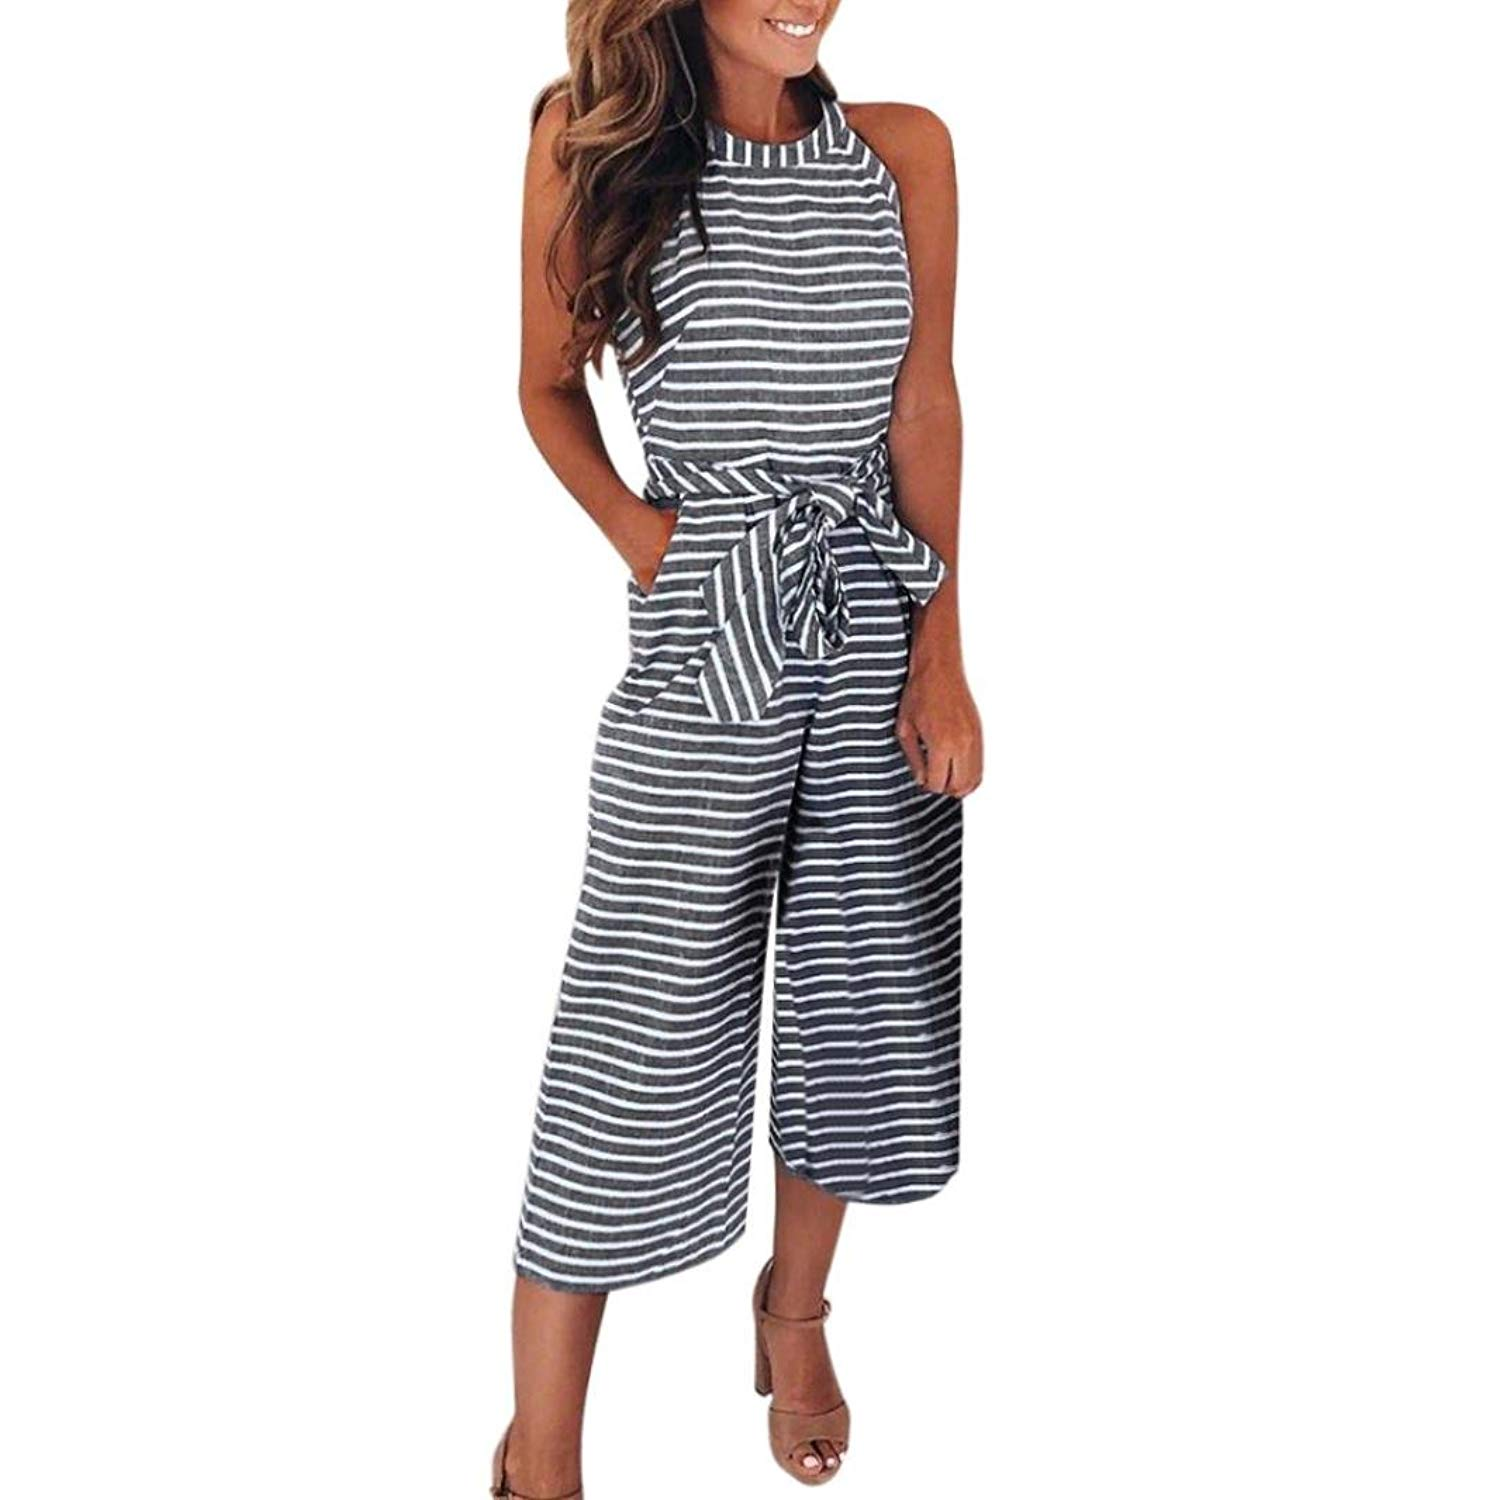 d276ece17ba5 Get Quotations · Lunaya Women Halter Striped Wide Leg Cropped Pants Waist  Belt Casual Jumpsuits Rompers with Pockets